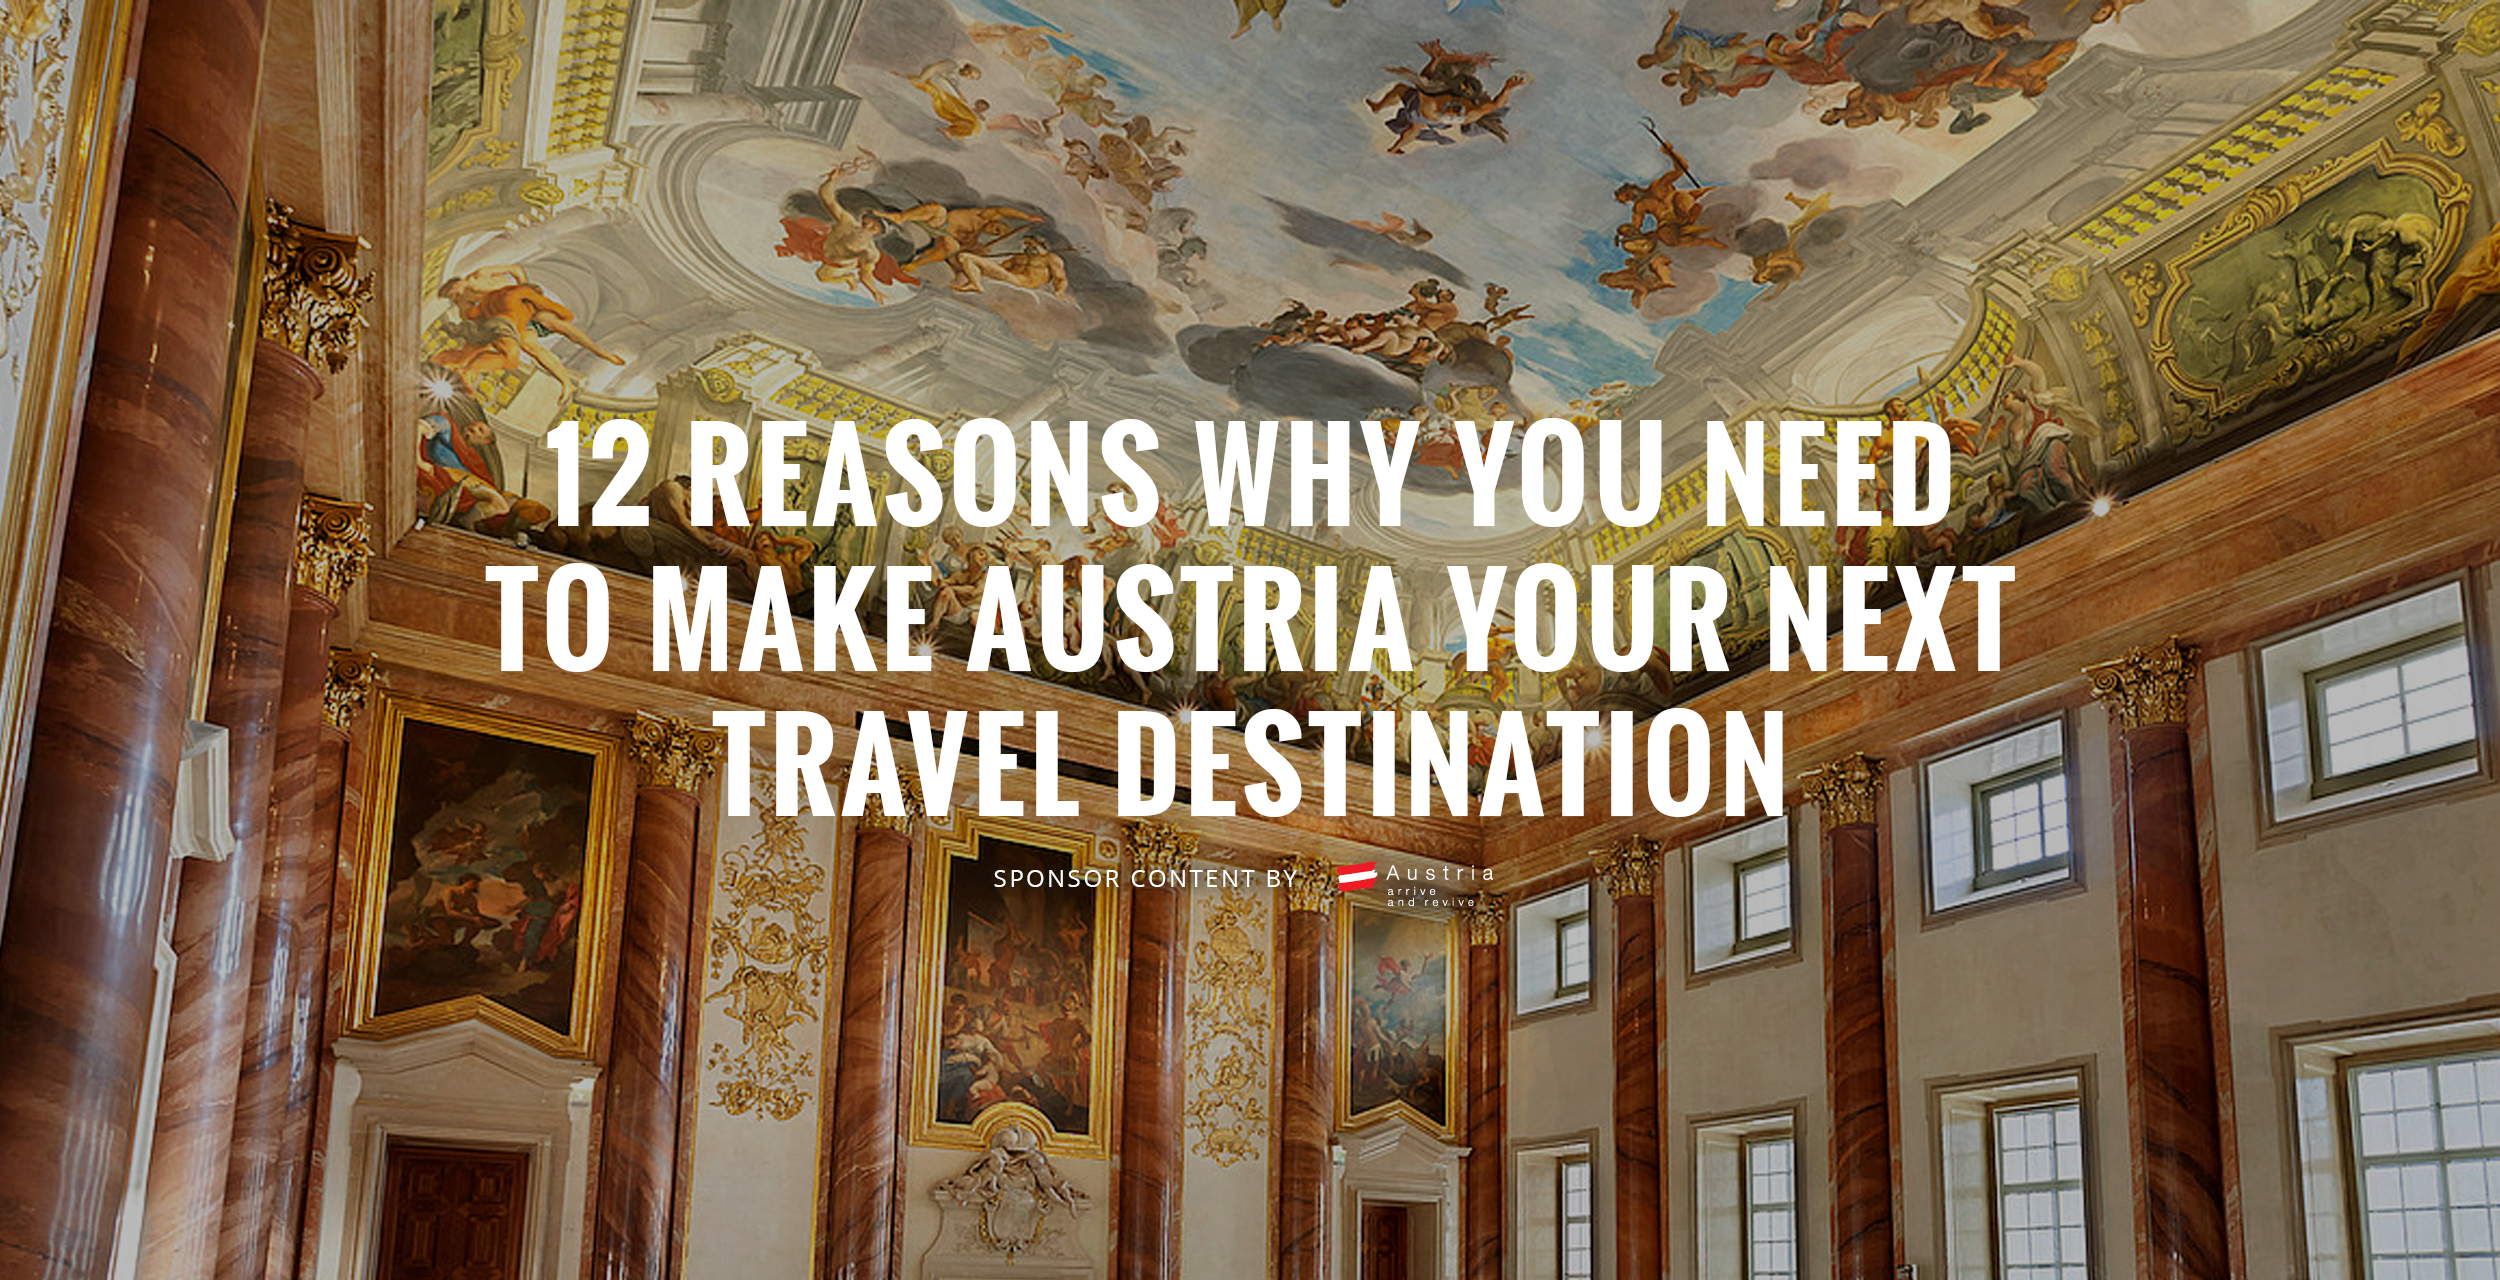 12 Reasons Why You Need to Make Austria Your Next Travel Destination